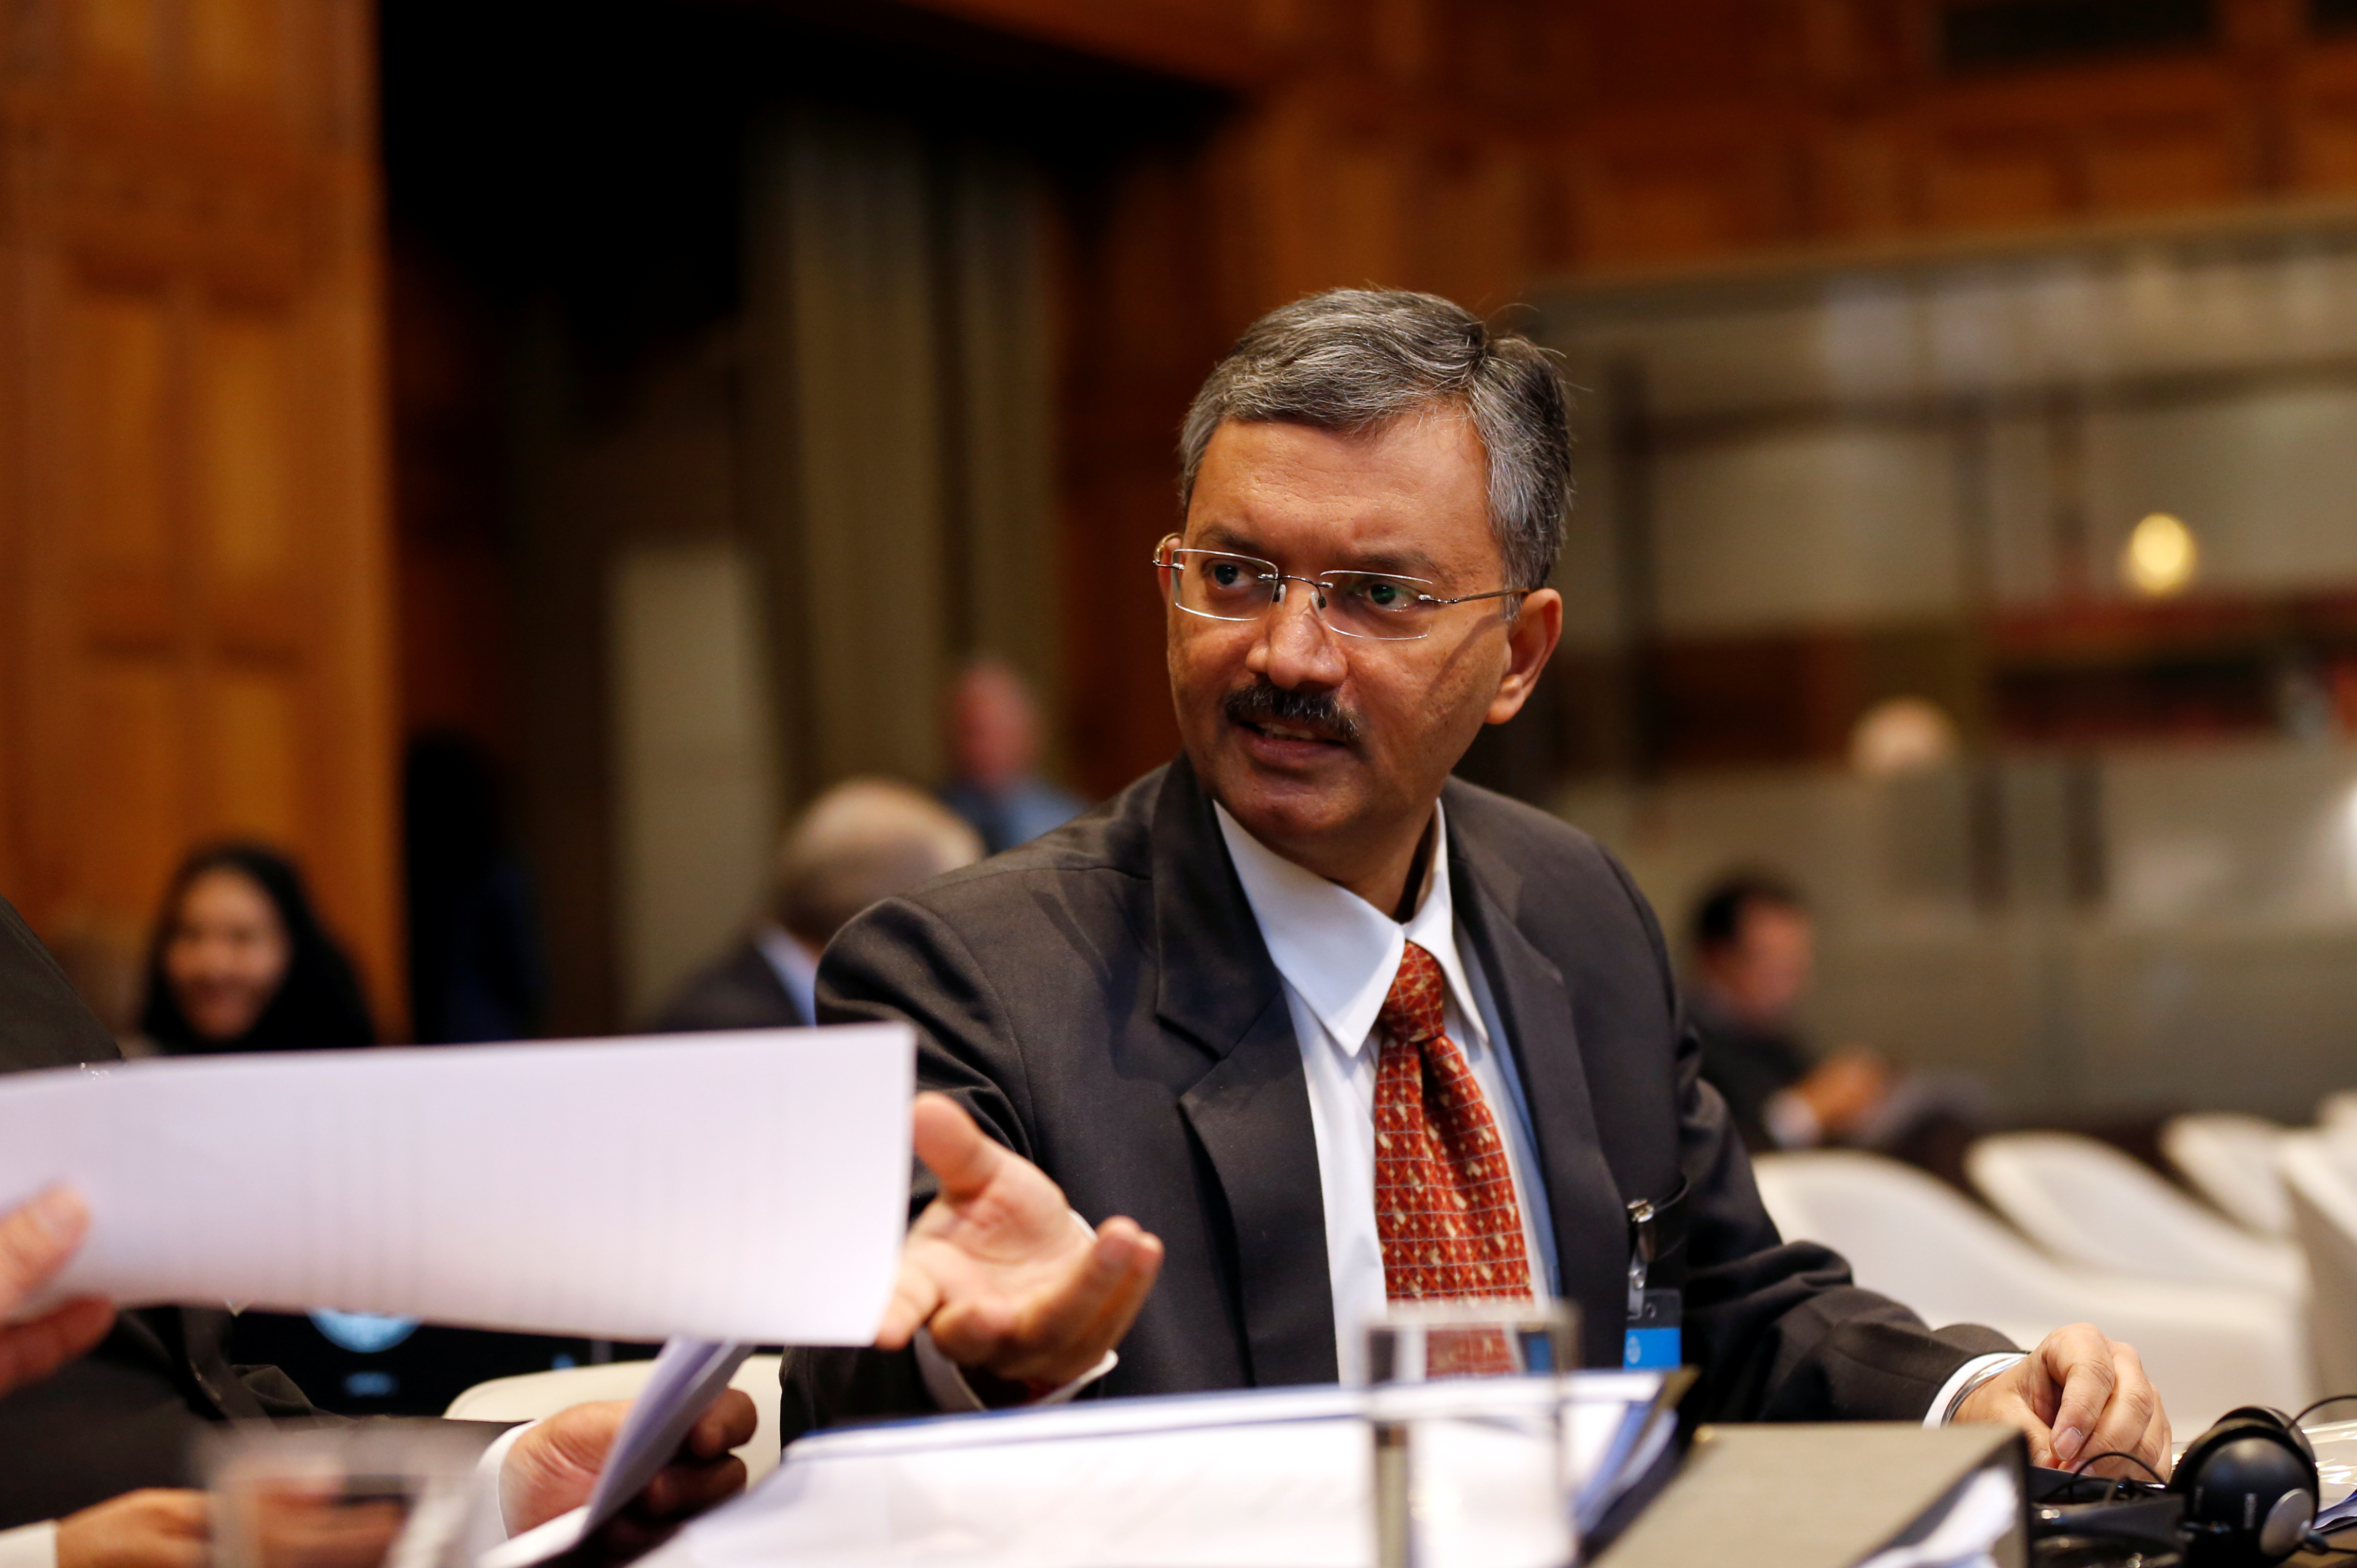 Deepak Mittal, joint secretary of Indian Ministry of External Affairs, is seen at the International Court of Justice during the final hearing of the Kulbhushan Jadhav case in The Hague, the Netherlands, February 18, 2019. REUTERS/Eva Plevier